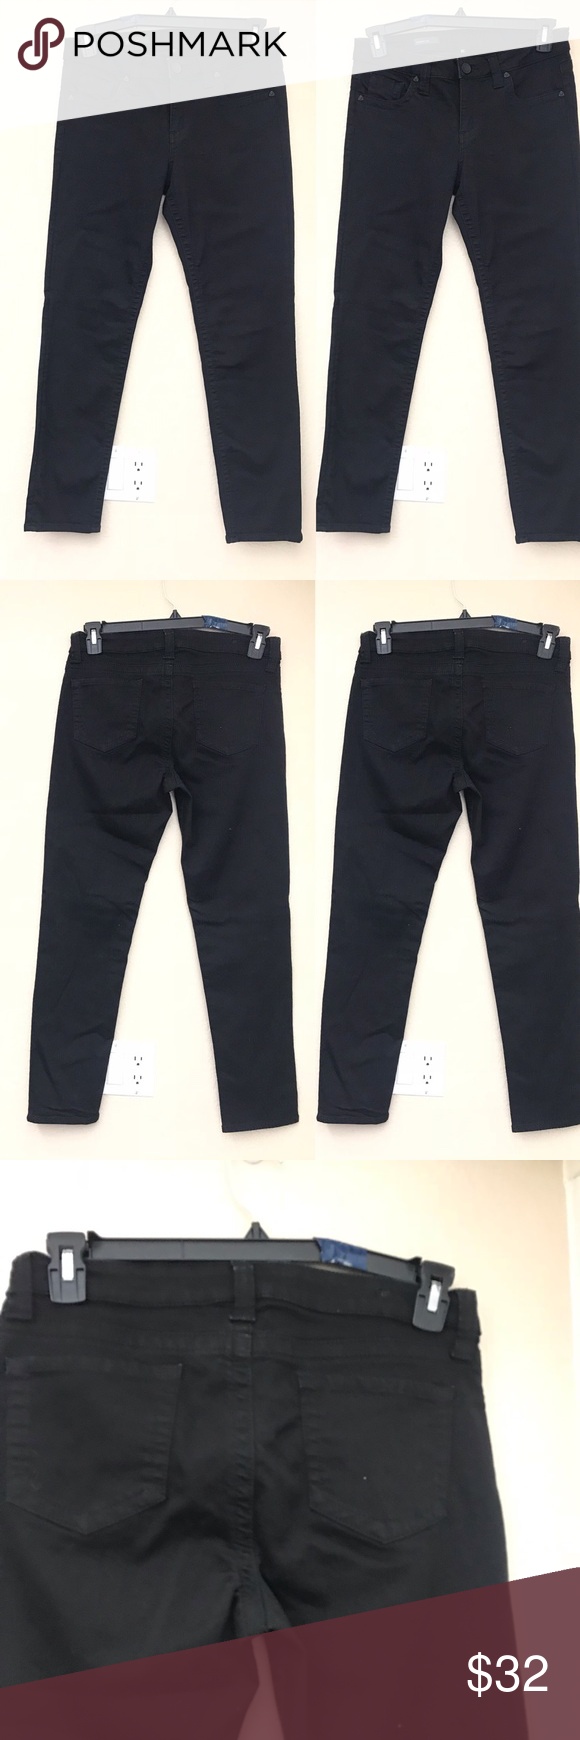 Wknd Sales Kut From The Kloth Straight Jeans Straight Leg Jeans Kut From The Kloth Straight Jeans